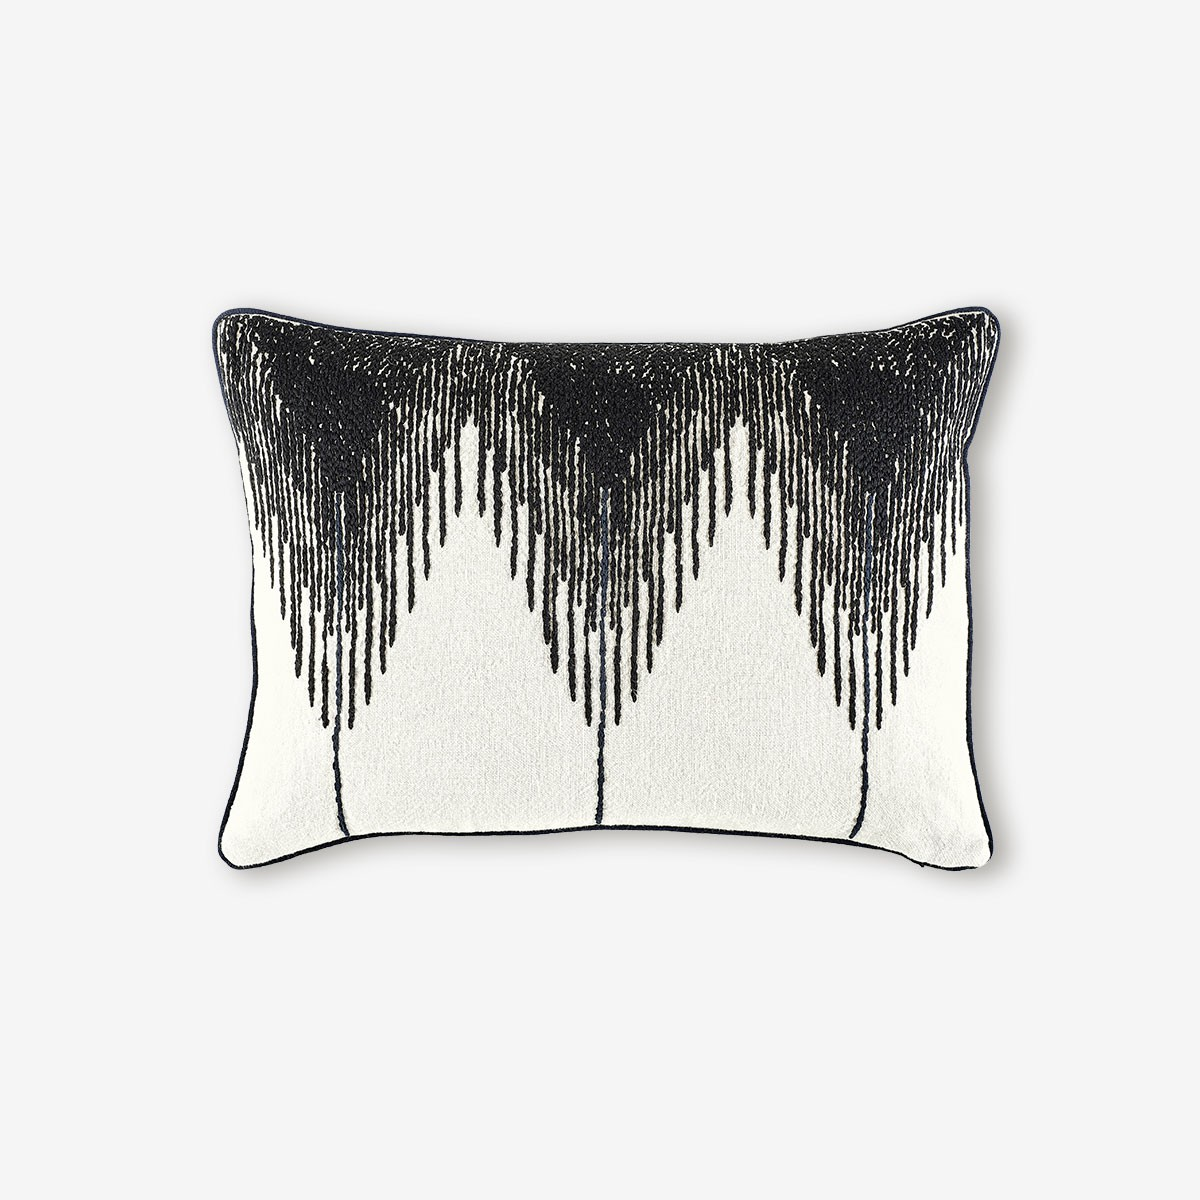 Josephine Cushion in Day & Night